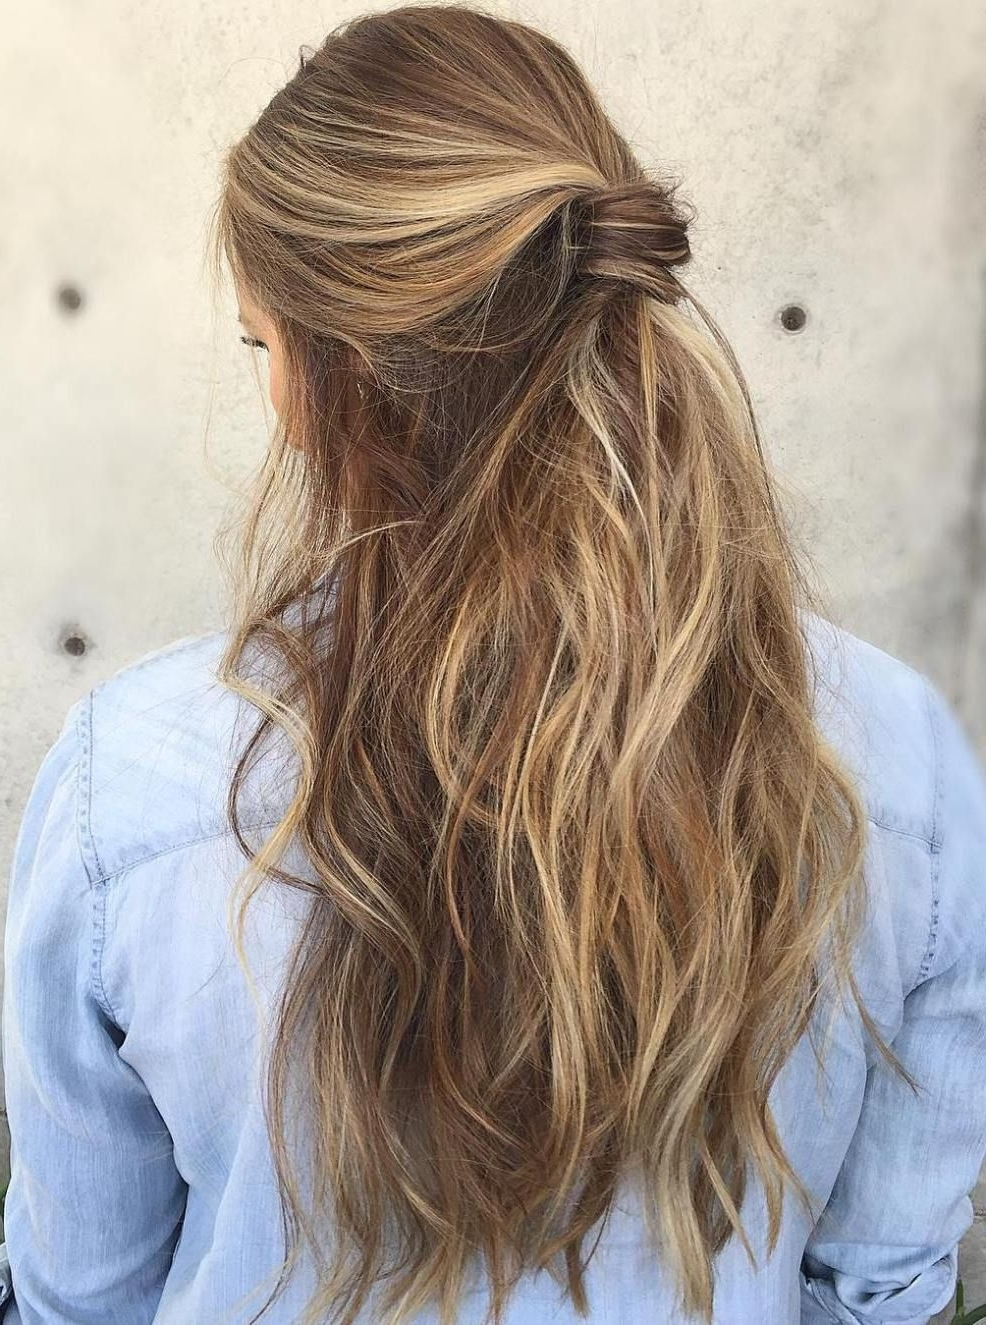 Most Current Ponytail Hairstyles For Fine Hair Intended For The 20 Most Alluring Ponytail Hairstyles (View 12 of 20)